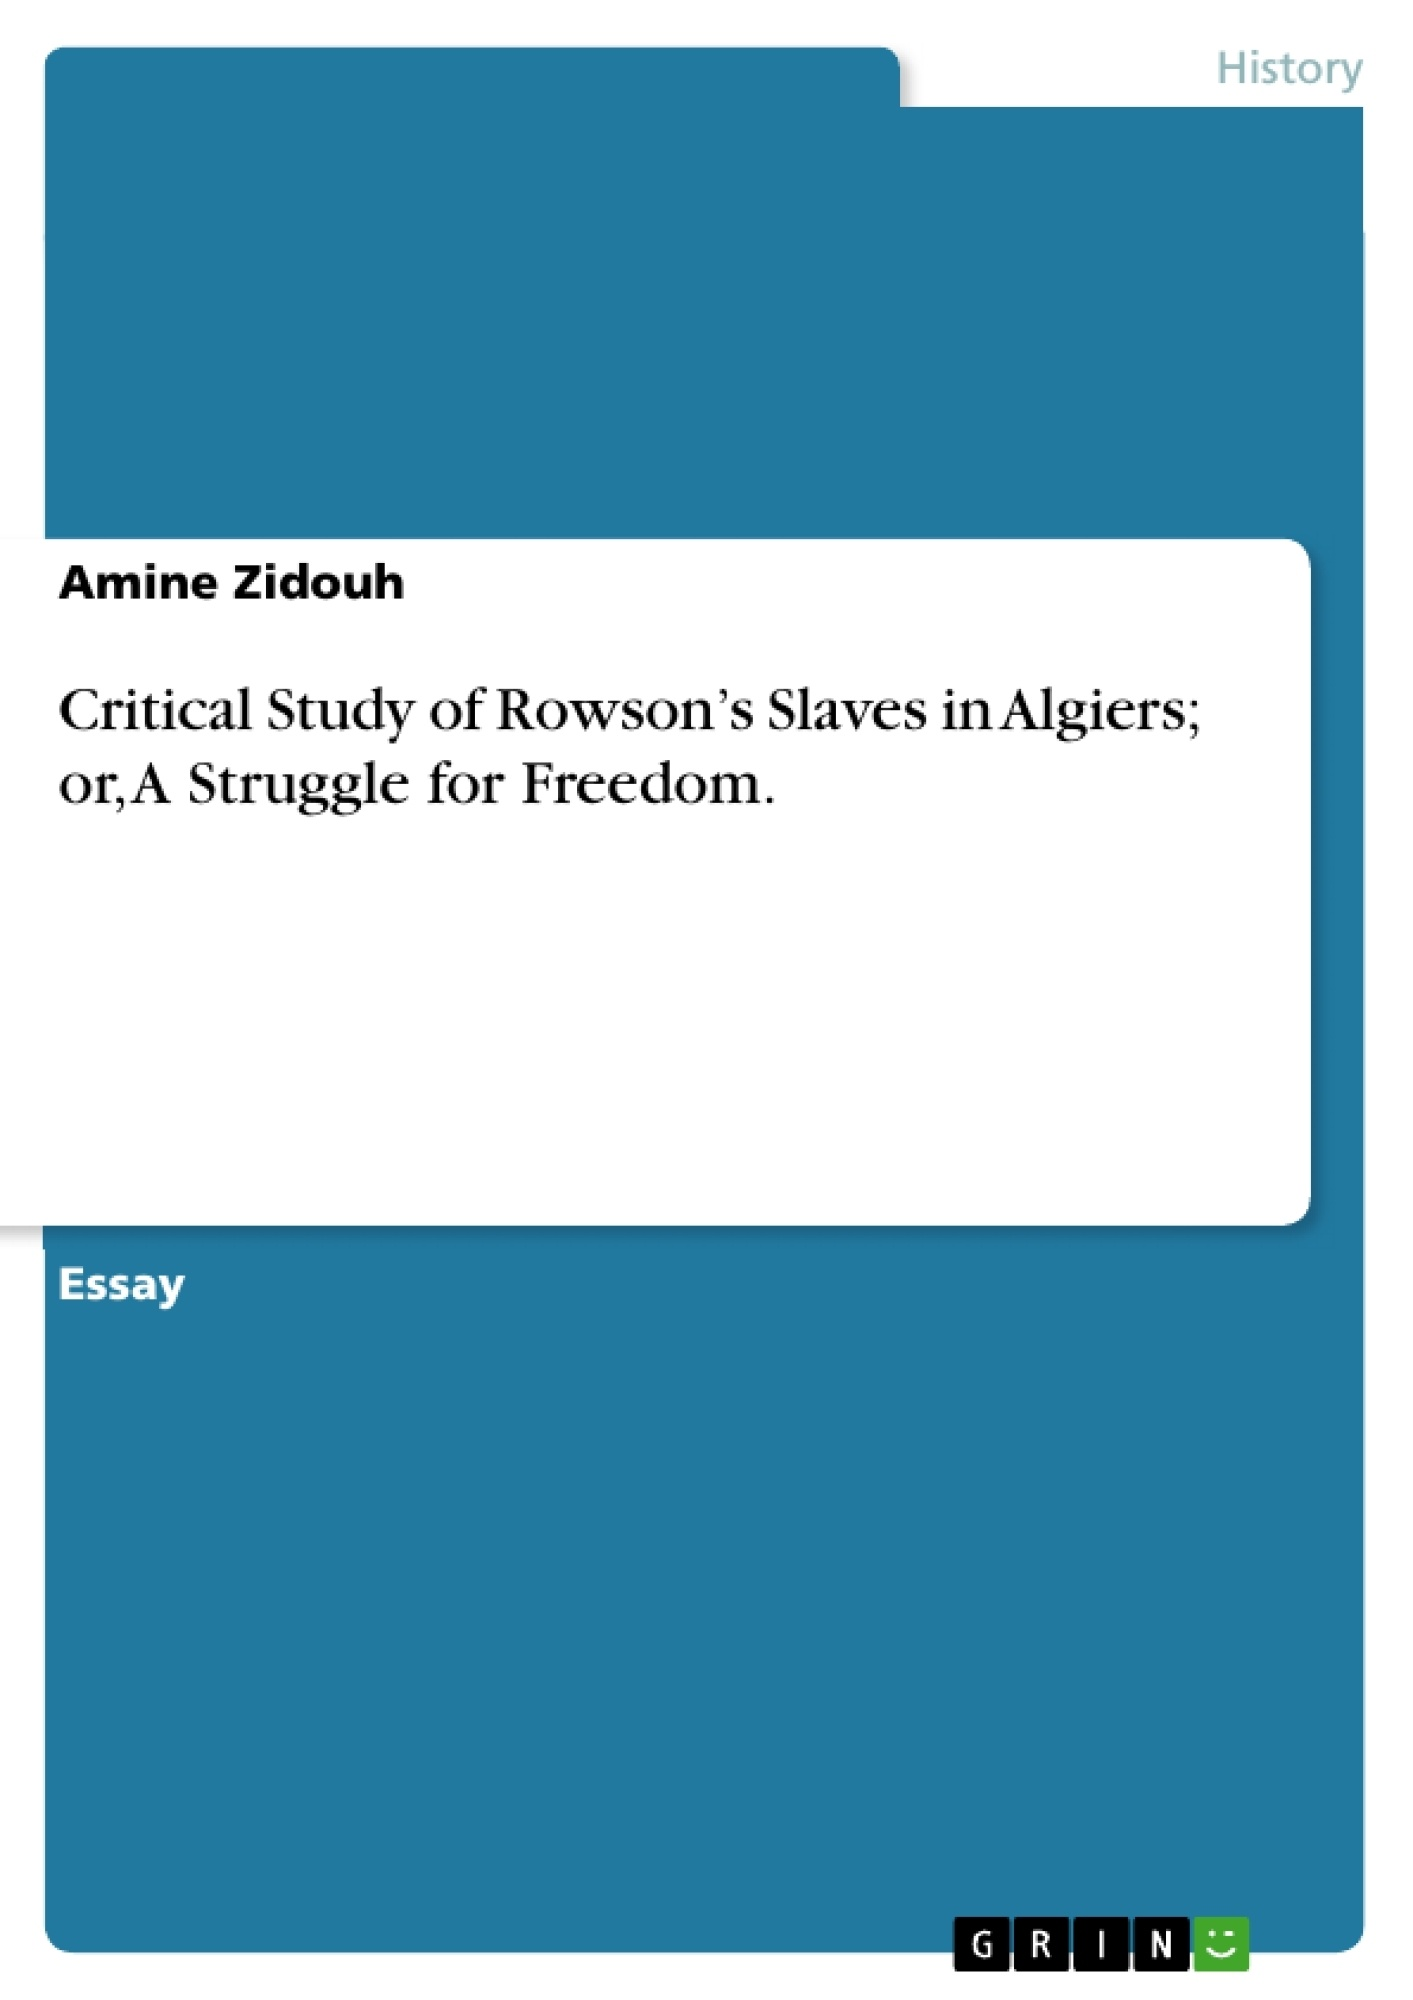 Title: Critical Study of Rowson's Slaves in Algiers; or, A Struggle for Freedom.